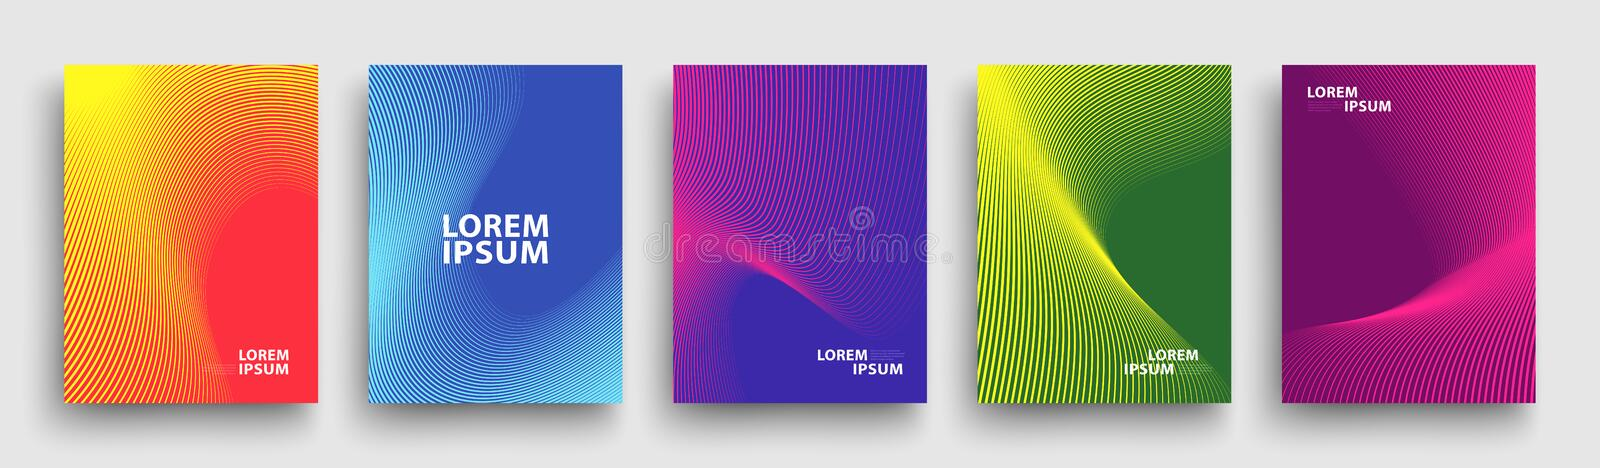 Modern Covers Template Design. Fluid colors. Set of Trendy Holographic Gradient shapes for Presentation, Magazines, Flyers. EPS 10 royalty free illustration